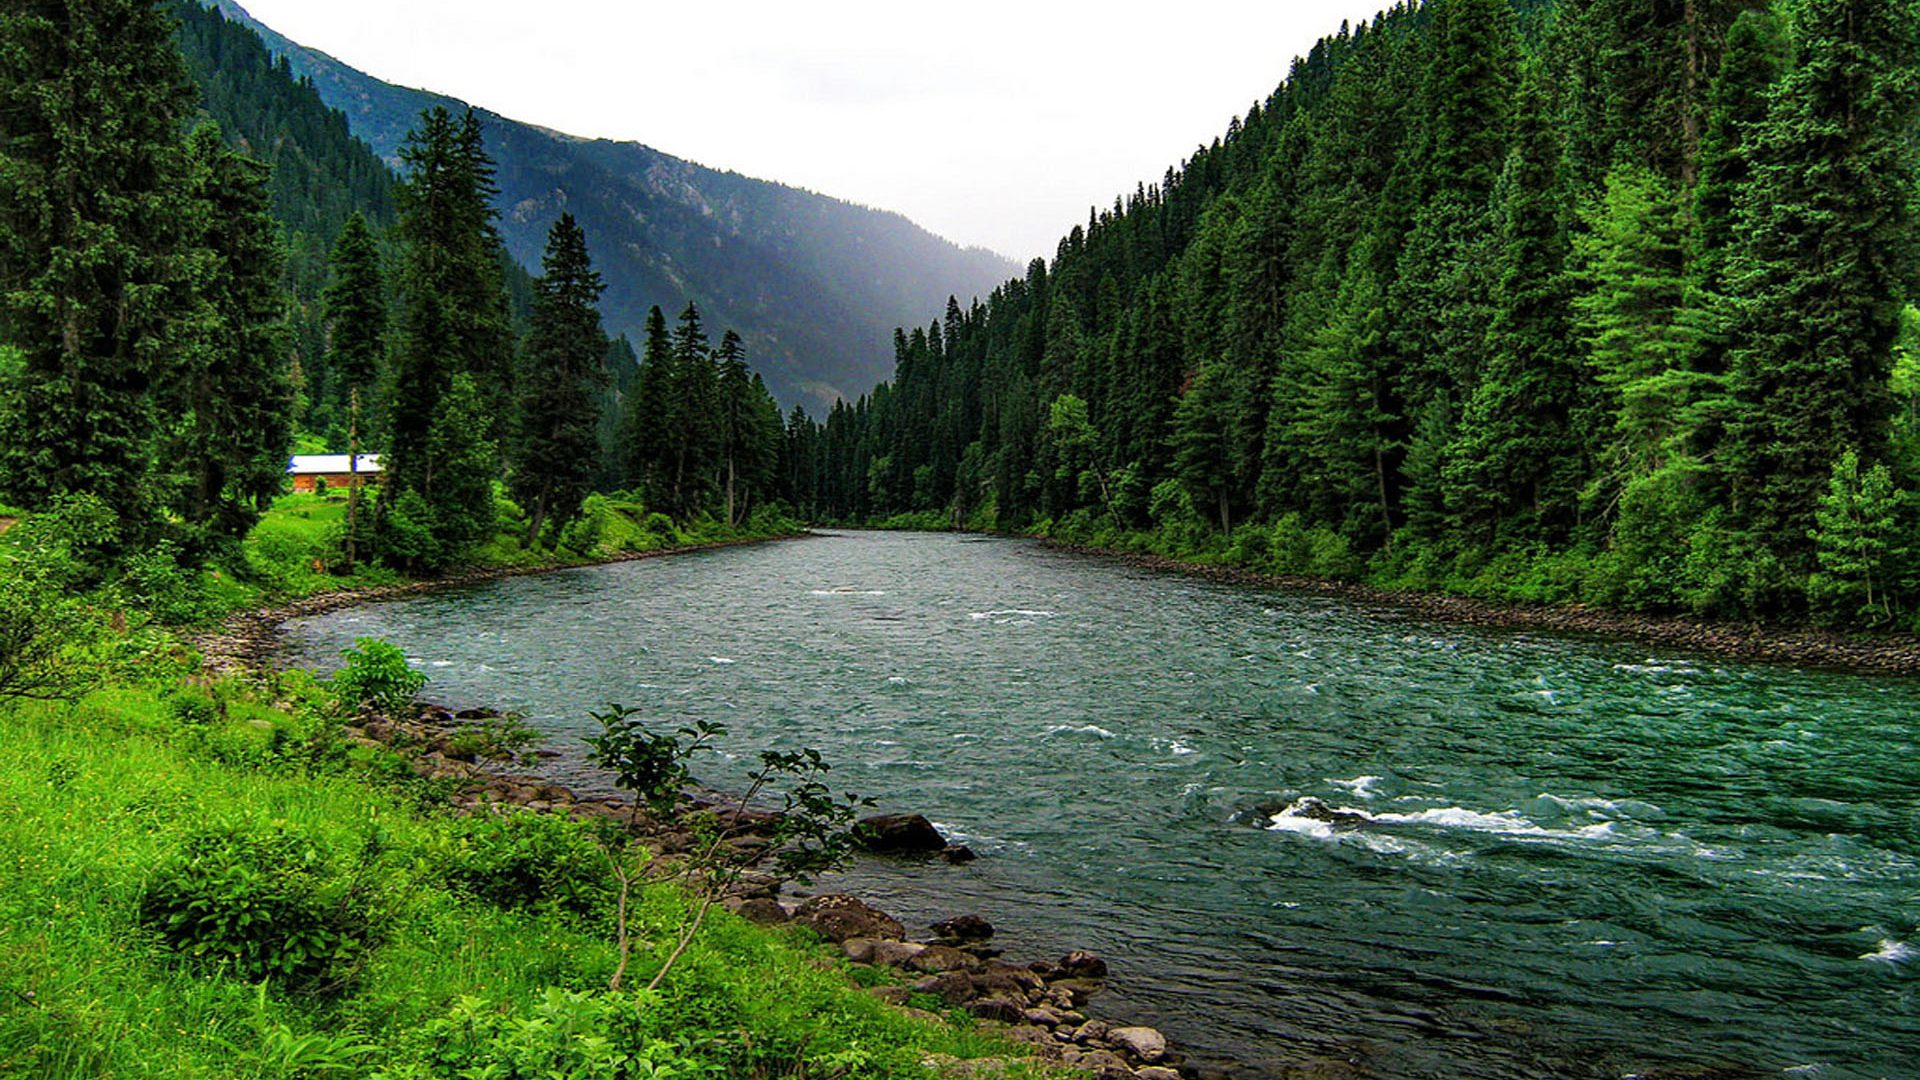 River In The Mountain Forest Hd Wallpaper